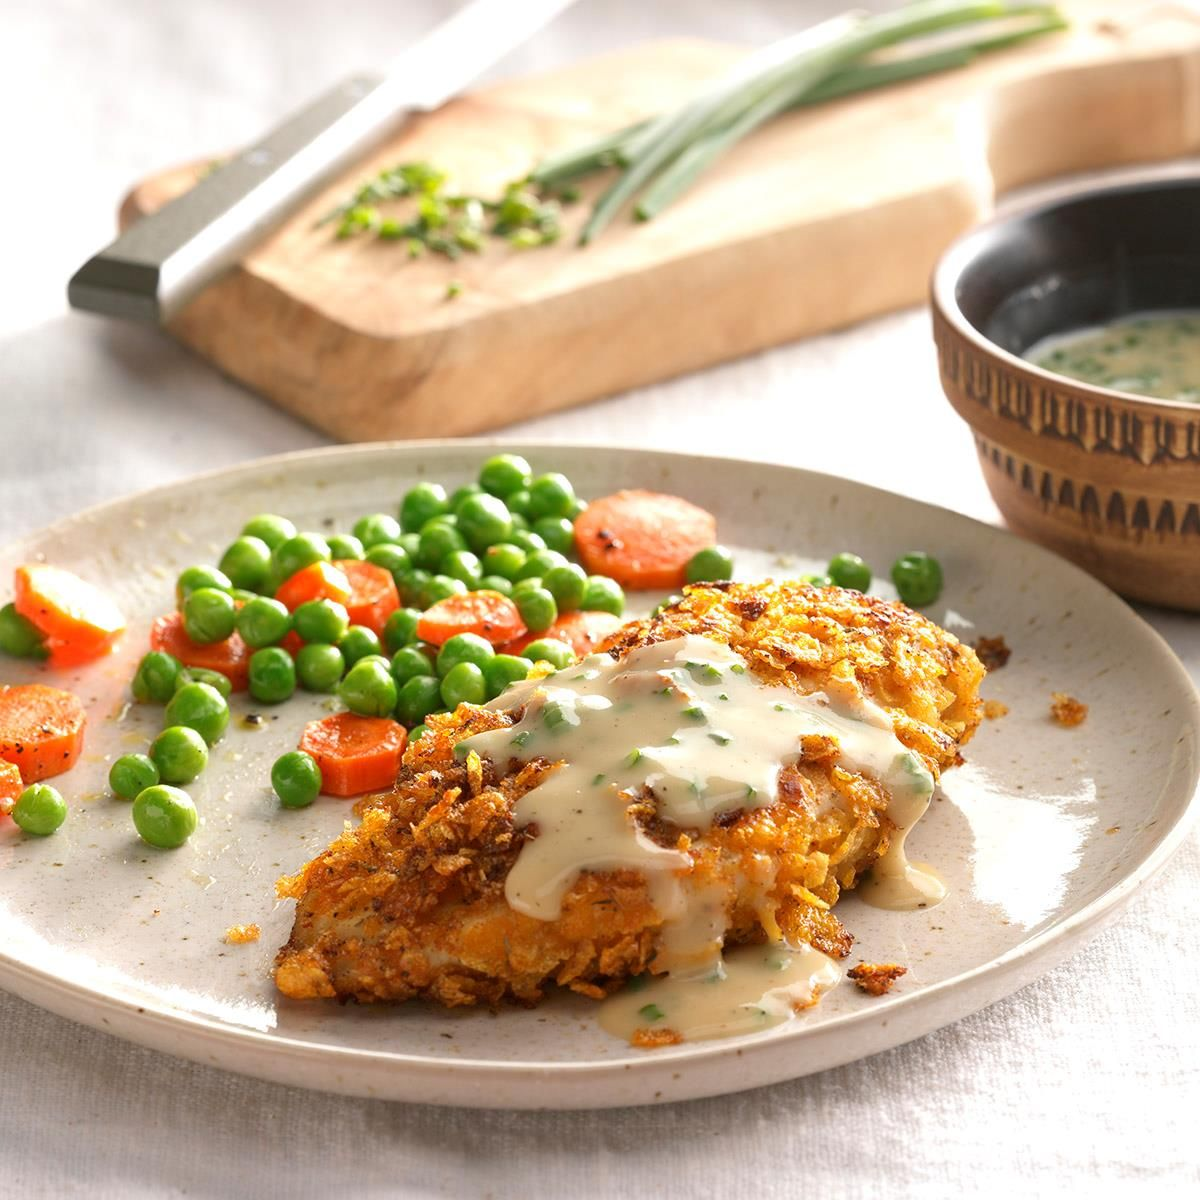 Country Chicken With Gravy Recipe With Images Food Recipes